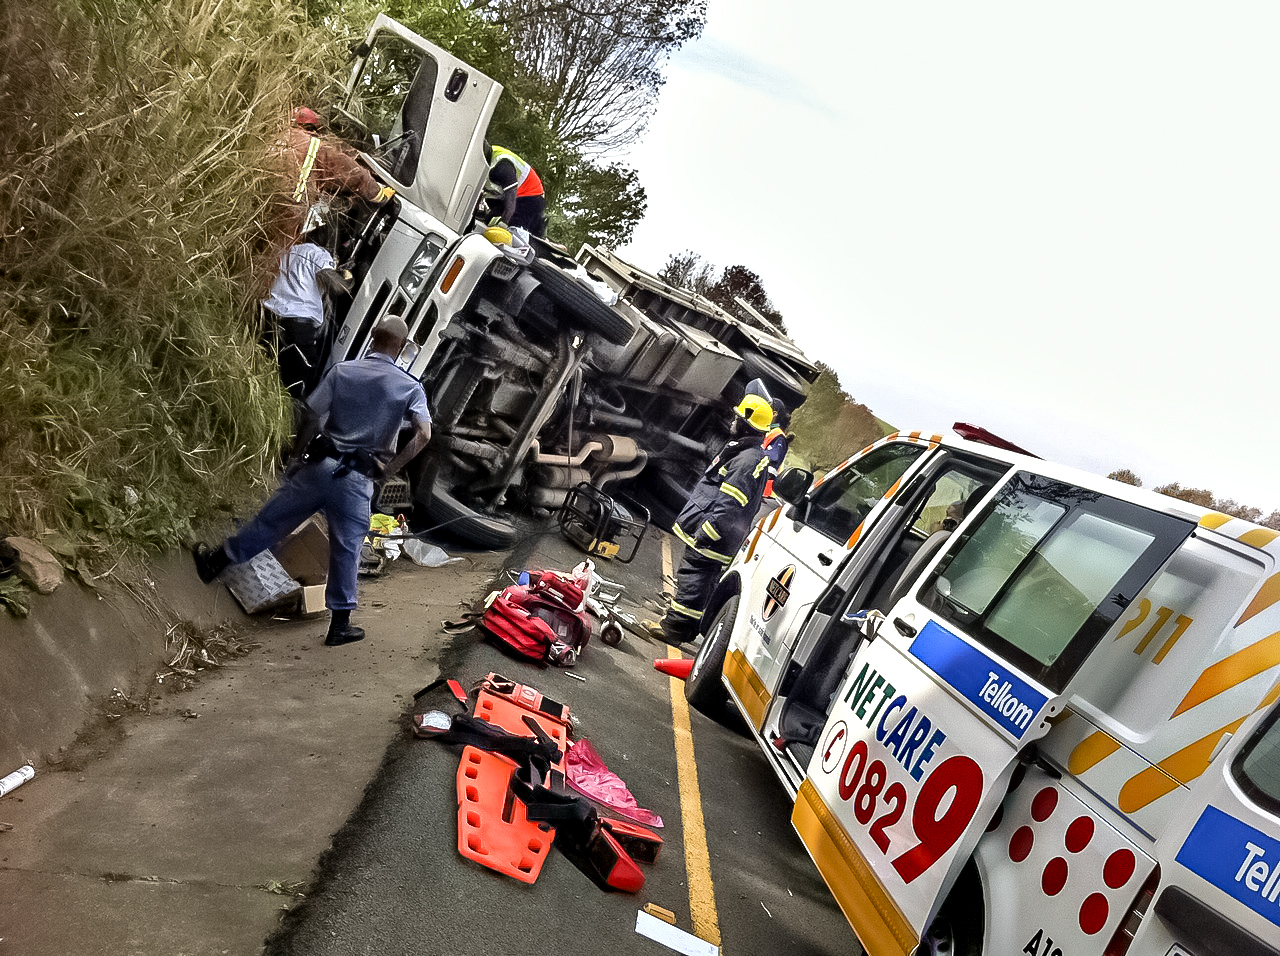 Lady killed in collision with truck on the N1 South before Olifantsfontein off-ramp